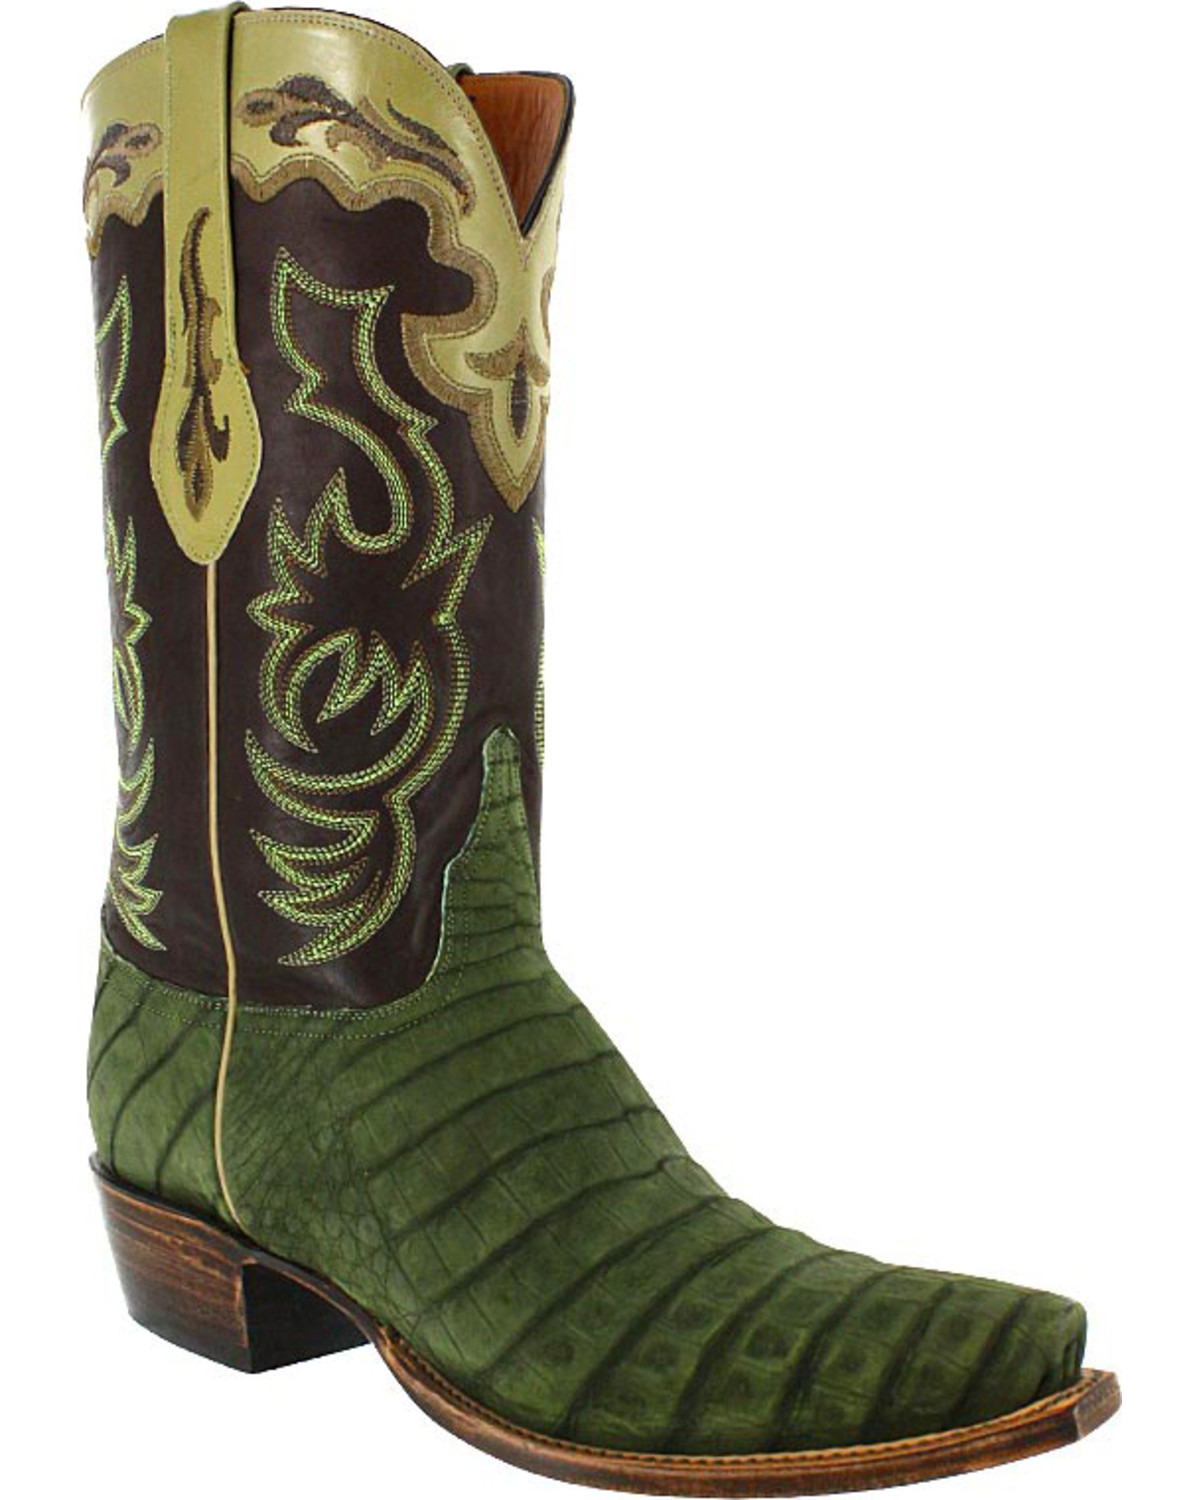 29fd8df2ccc Lucchese Men's Caiman and Suede Western Boots